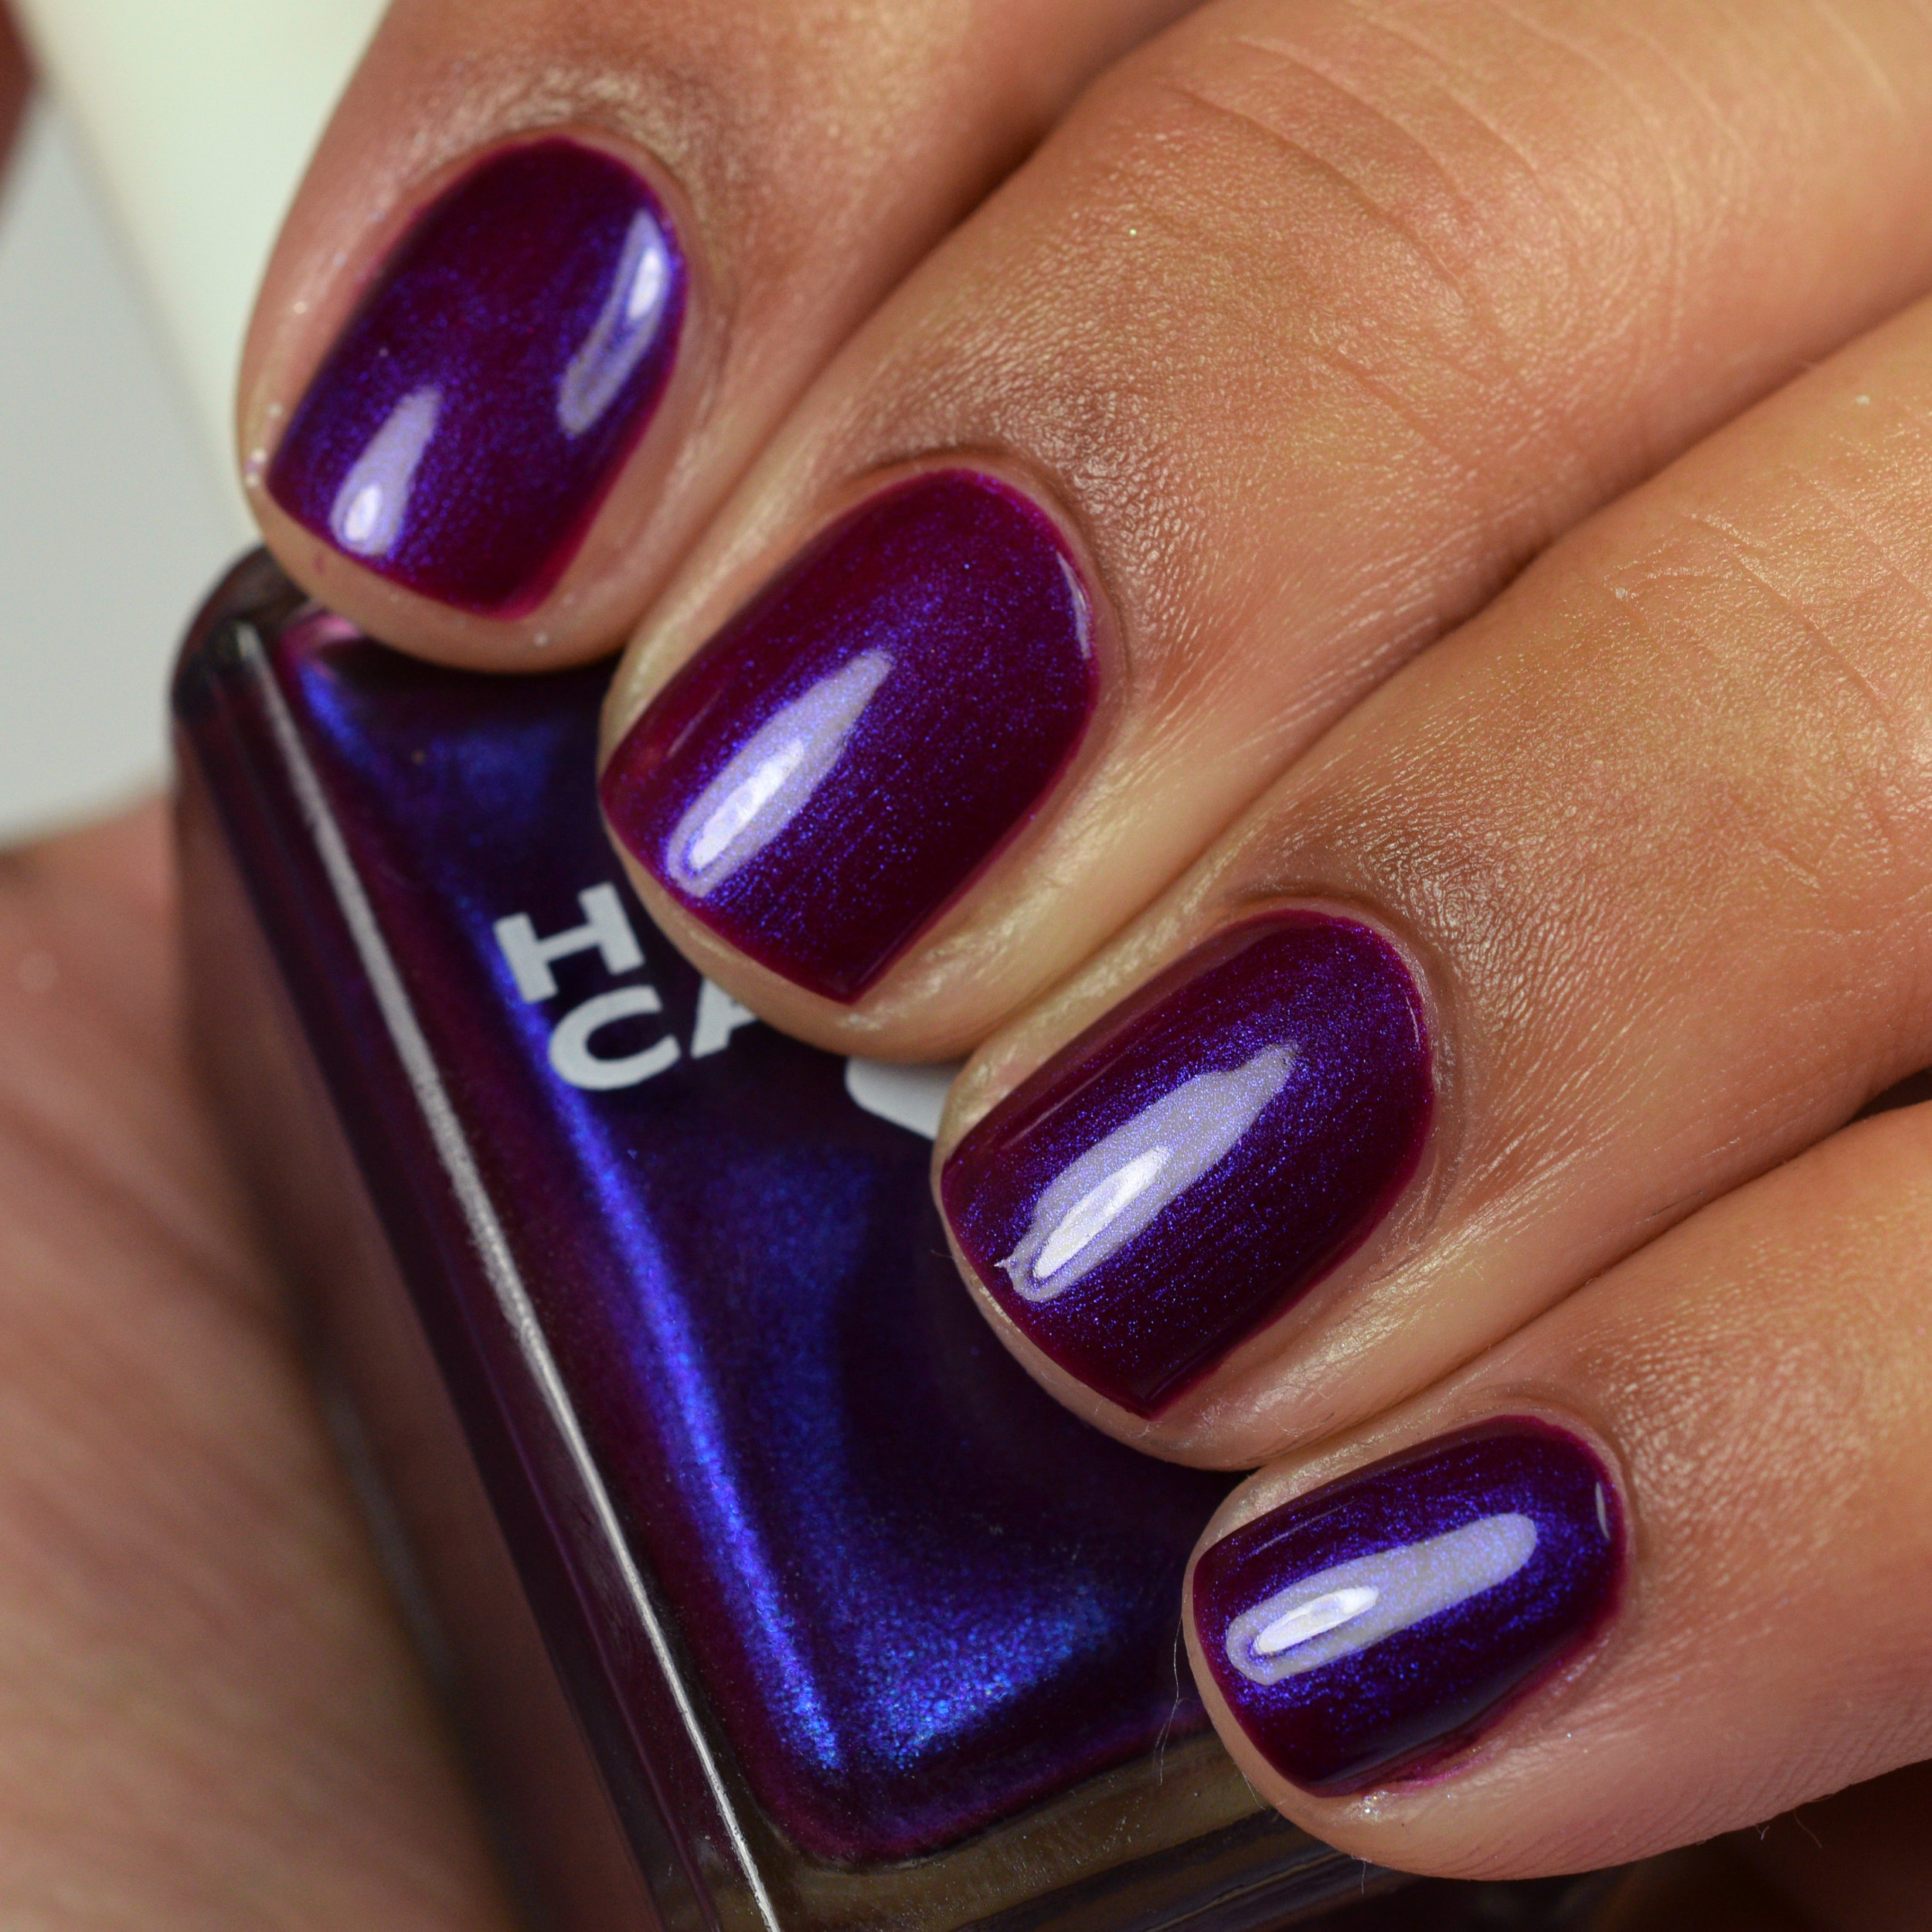 Hard Candy 20th Anniversary Collection 2015 Throwback Lacquer